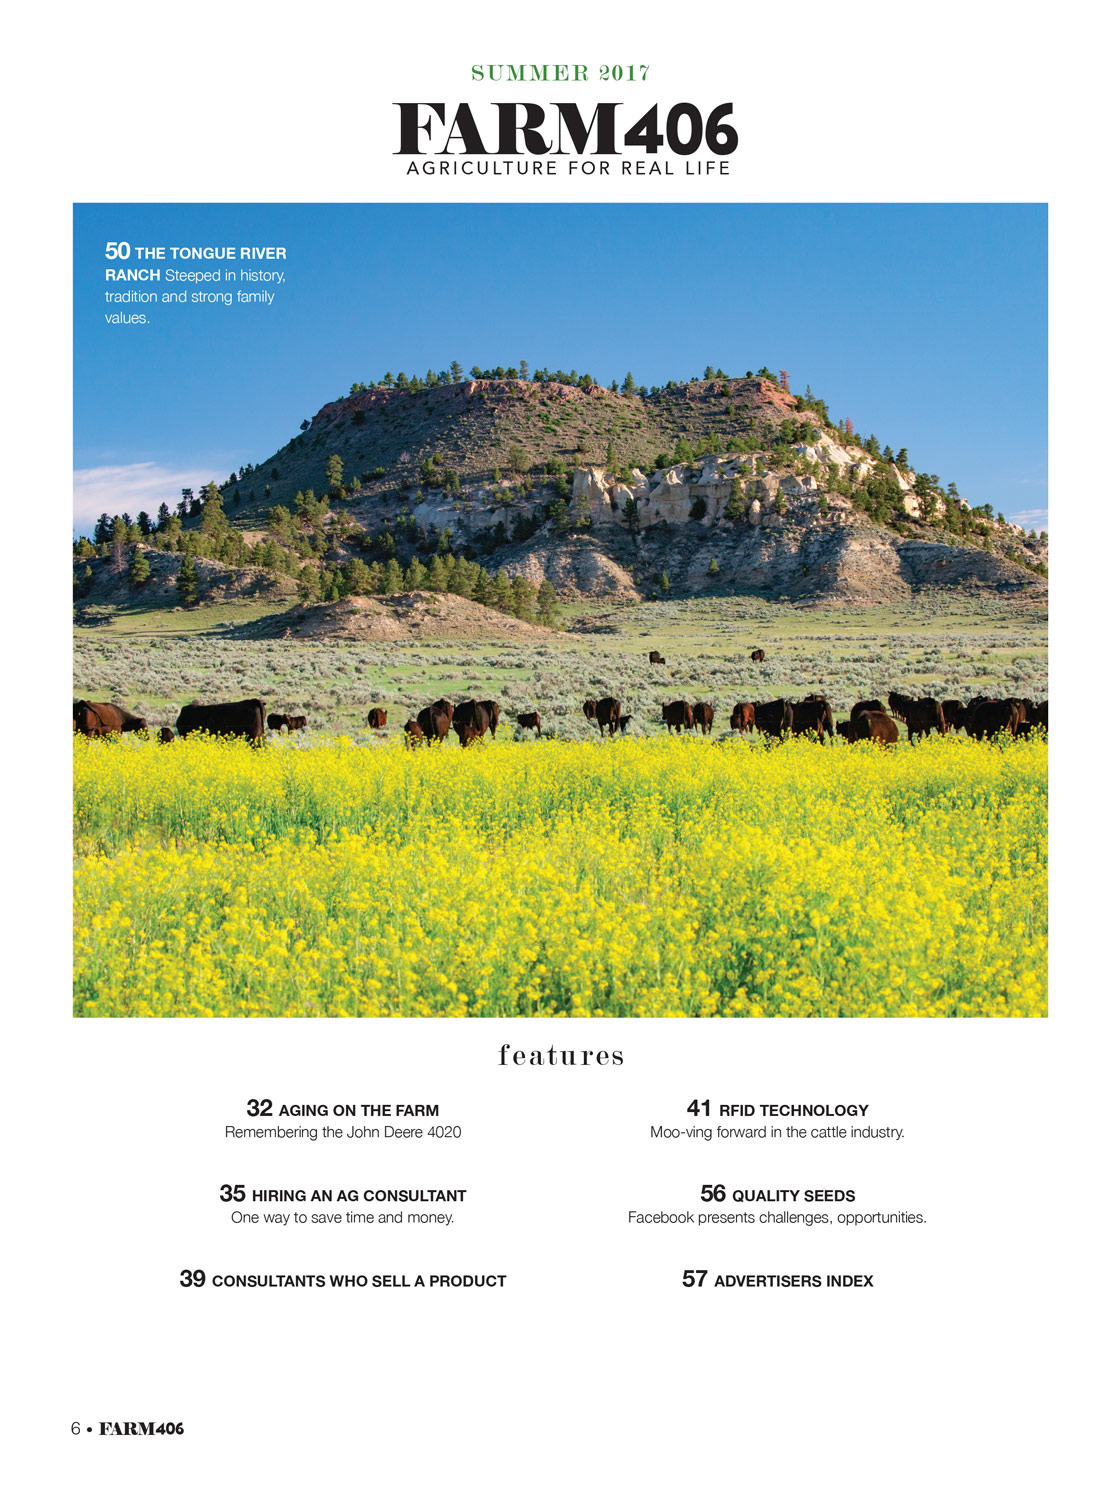 Ranching-Stock-Photos-Used-in-Farm406-Magazine